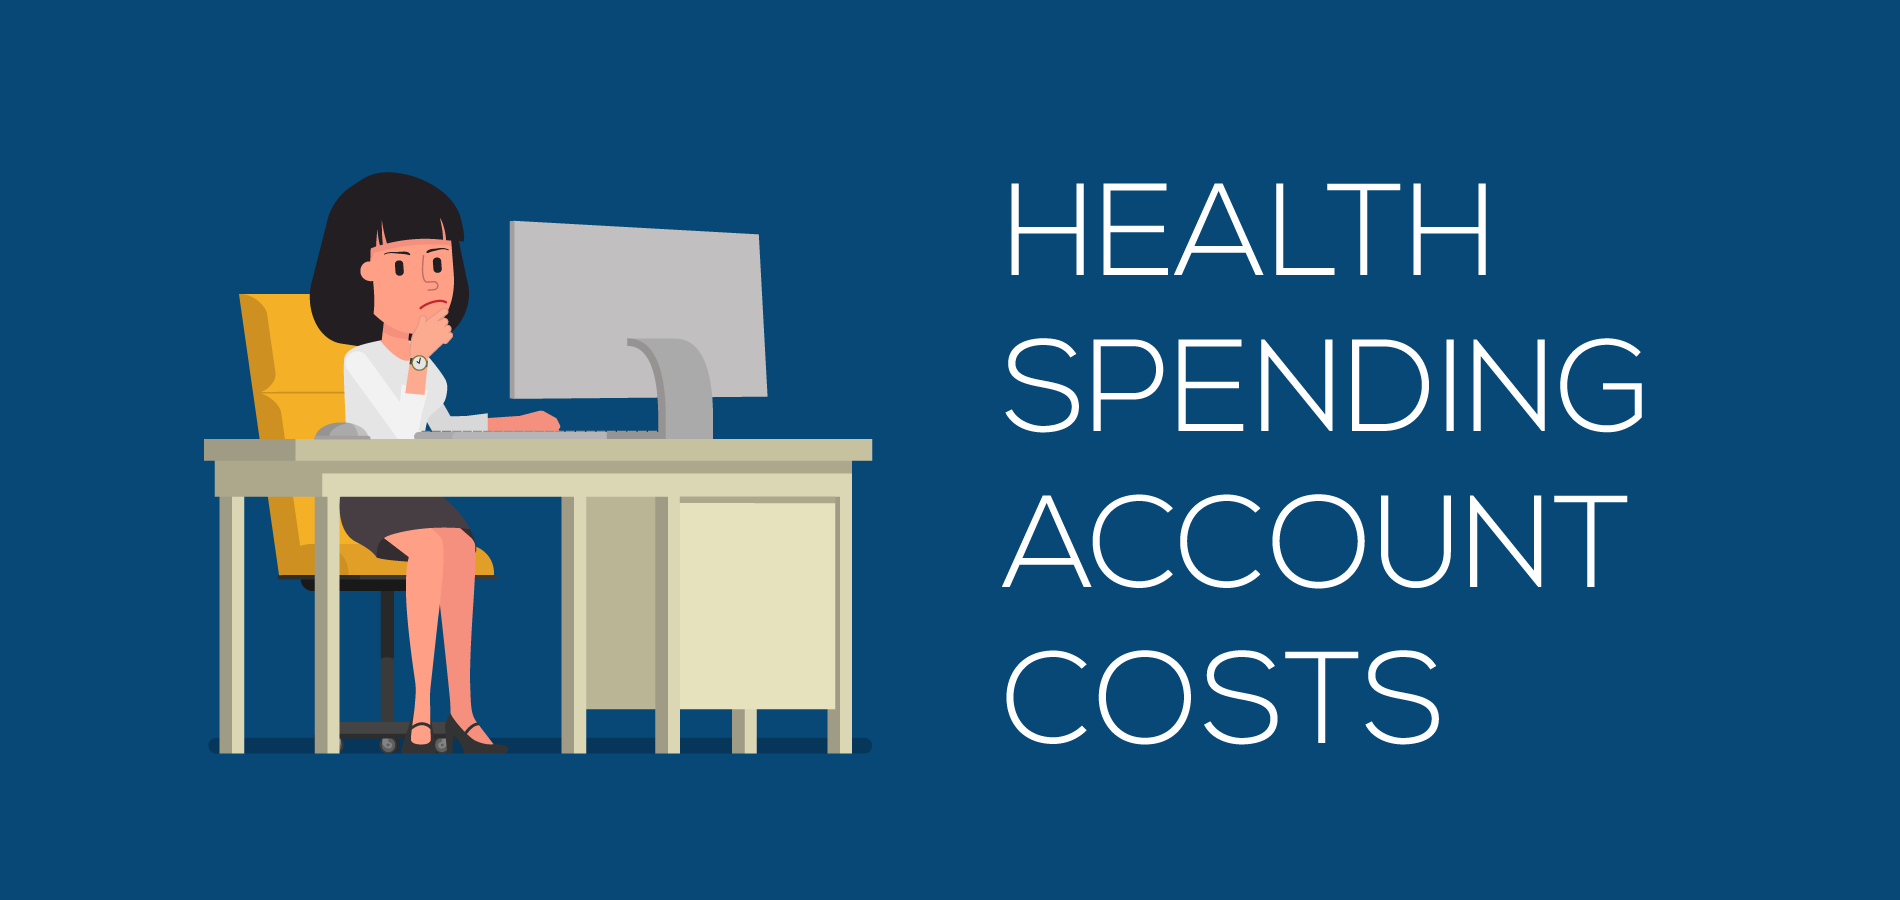 common misconceptions about health spending account costs-1